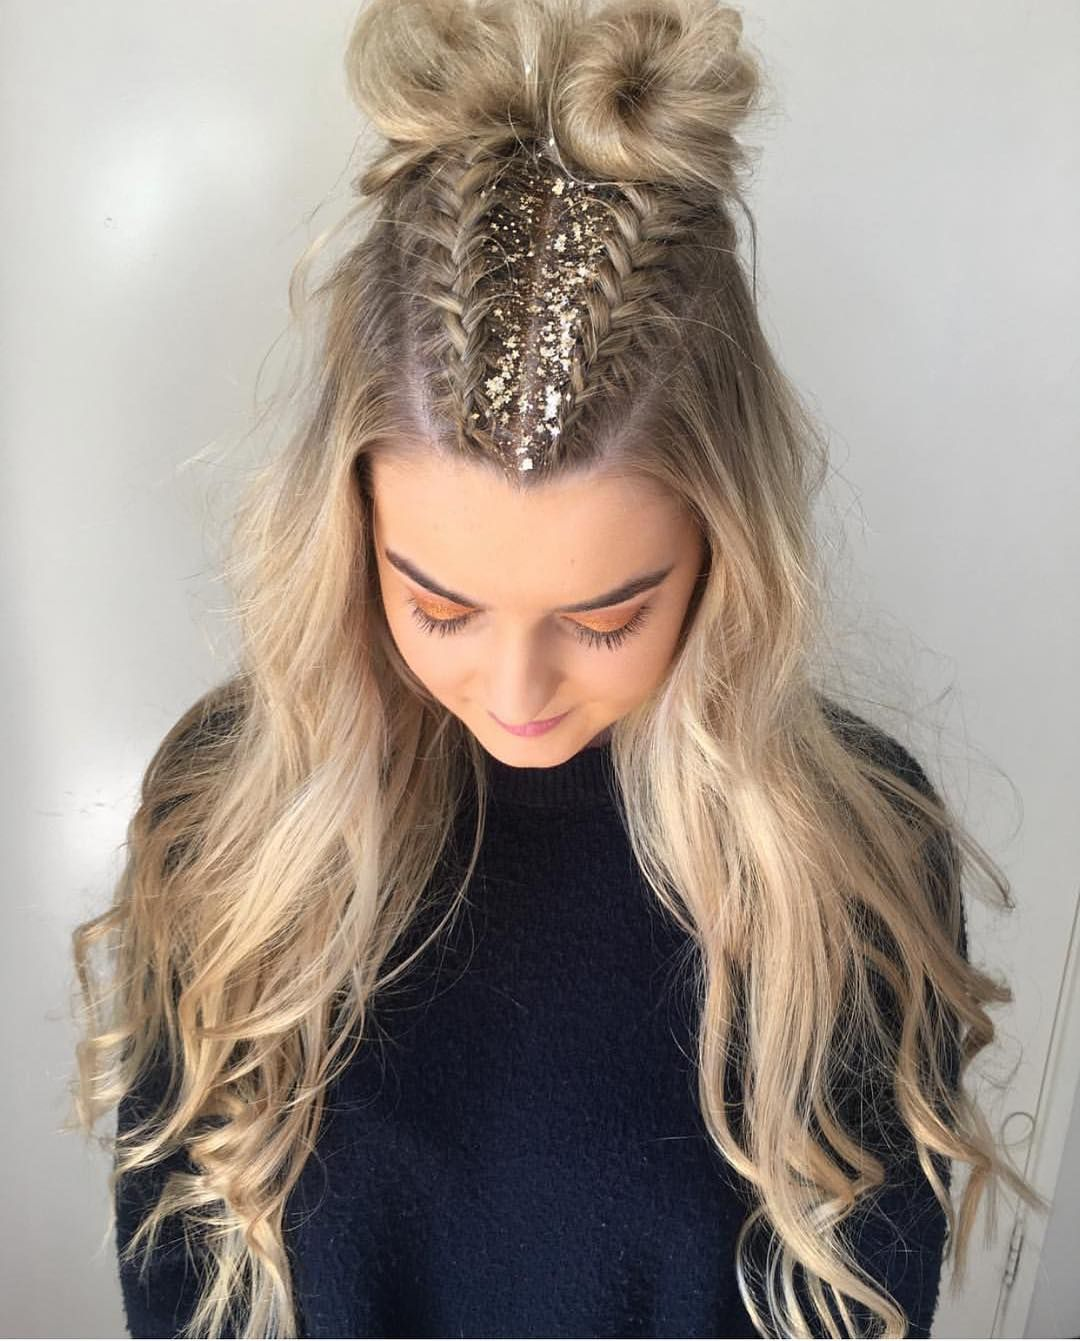 Party Hairstyles Top 36 Holiday Hair Styles Page 4 Style O Check Party Hairstyles Braided Hairstyles Holiday Hairstyles